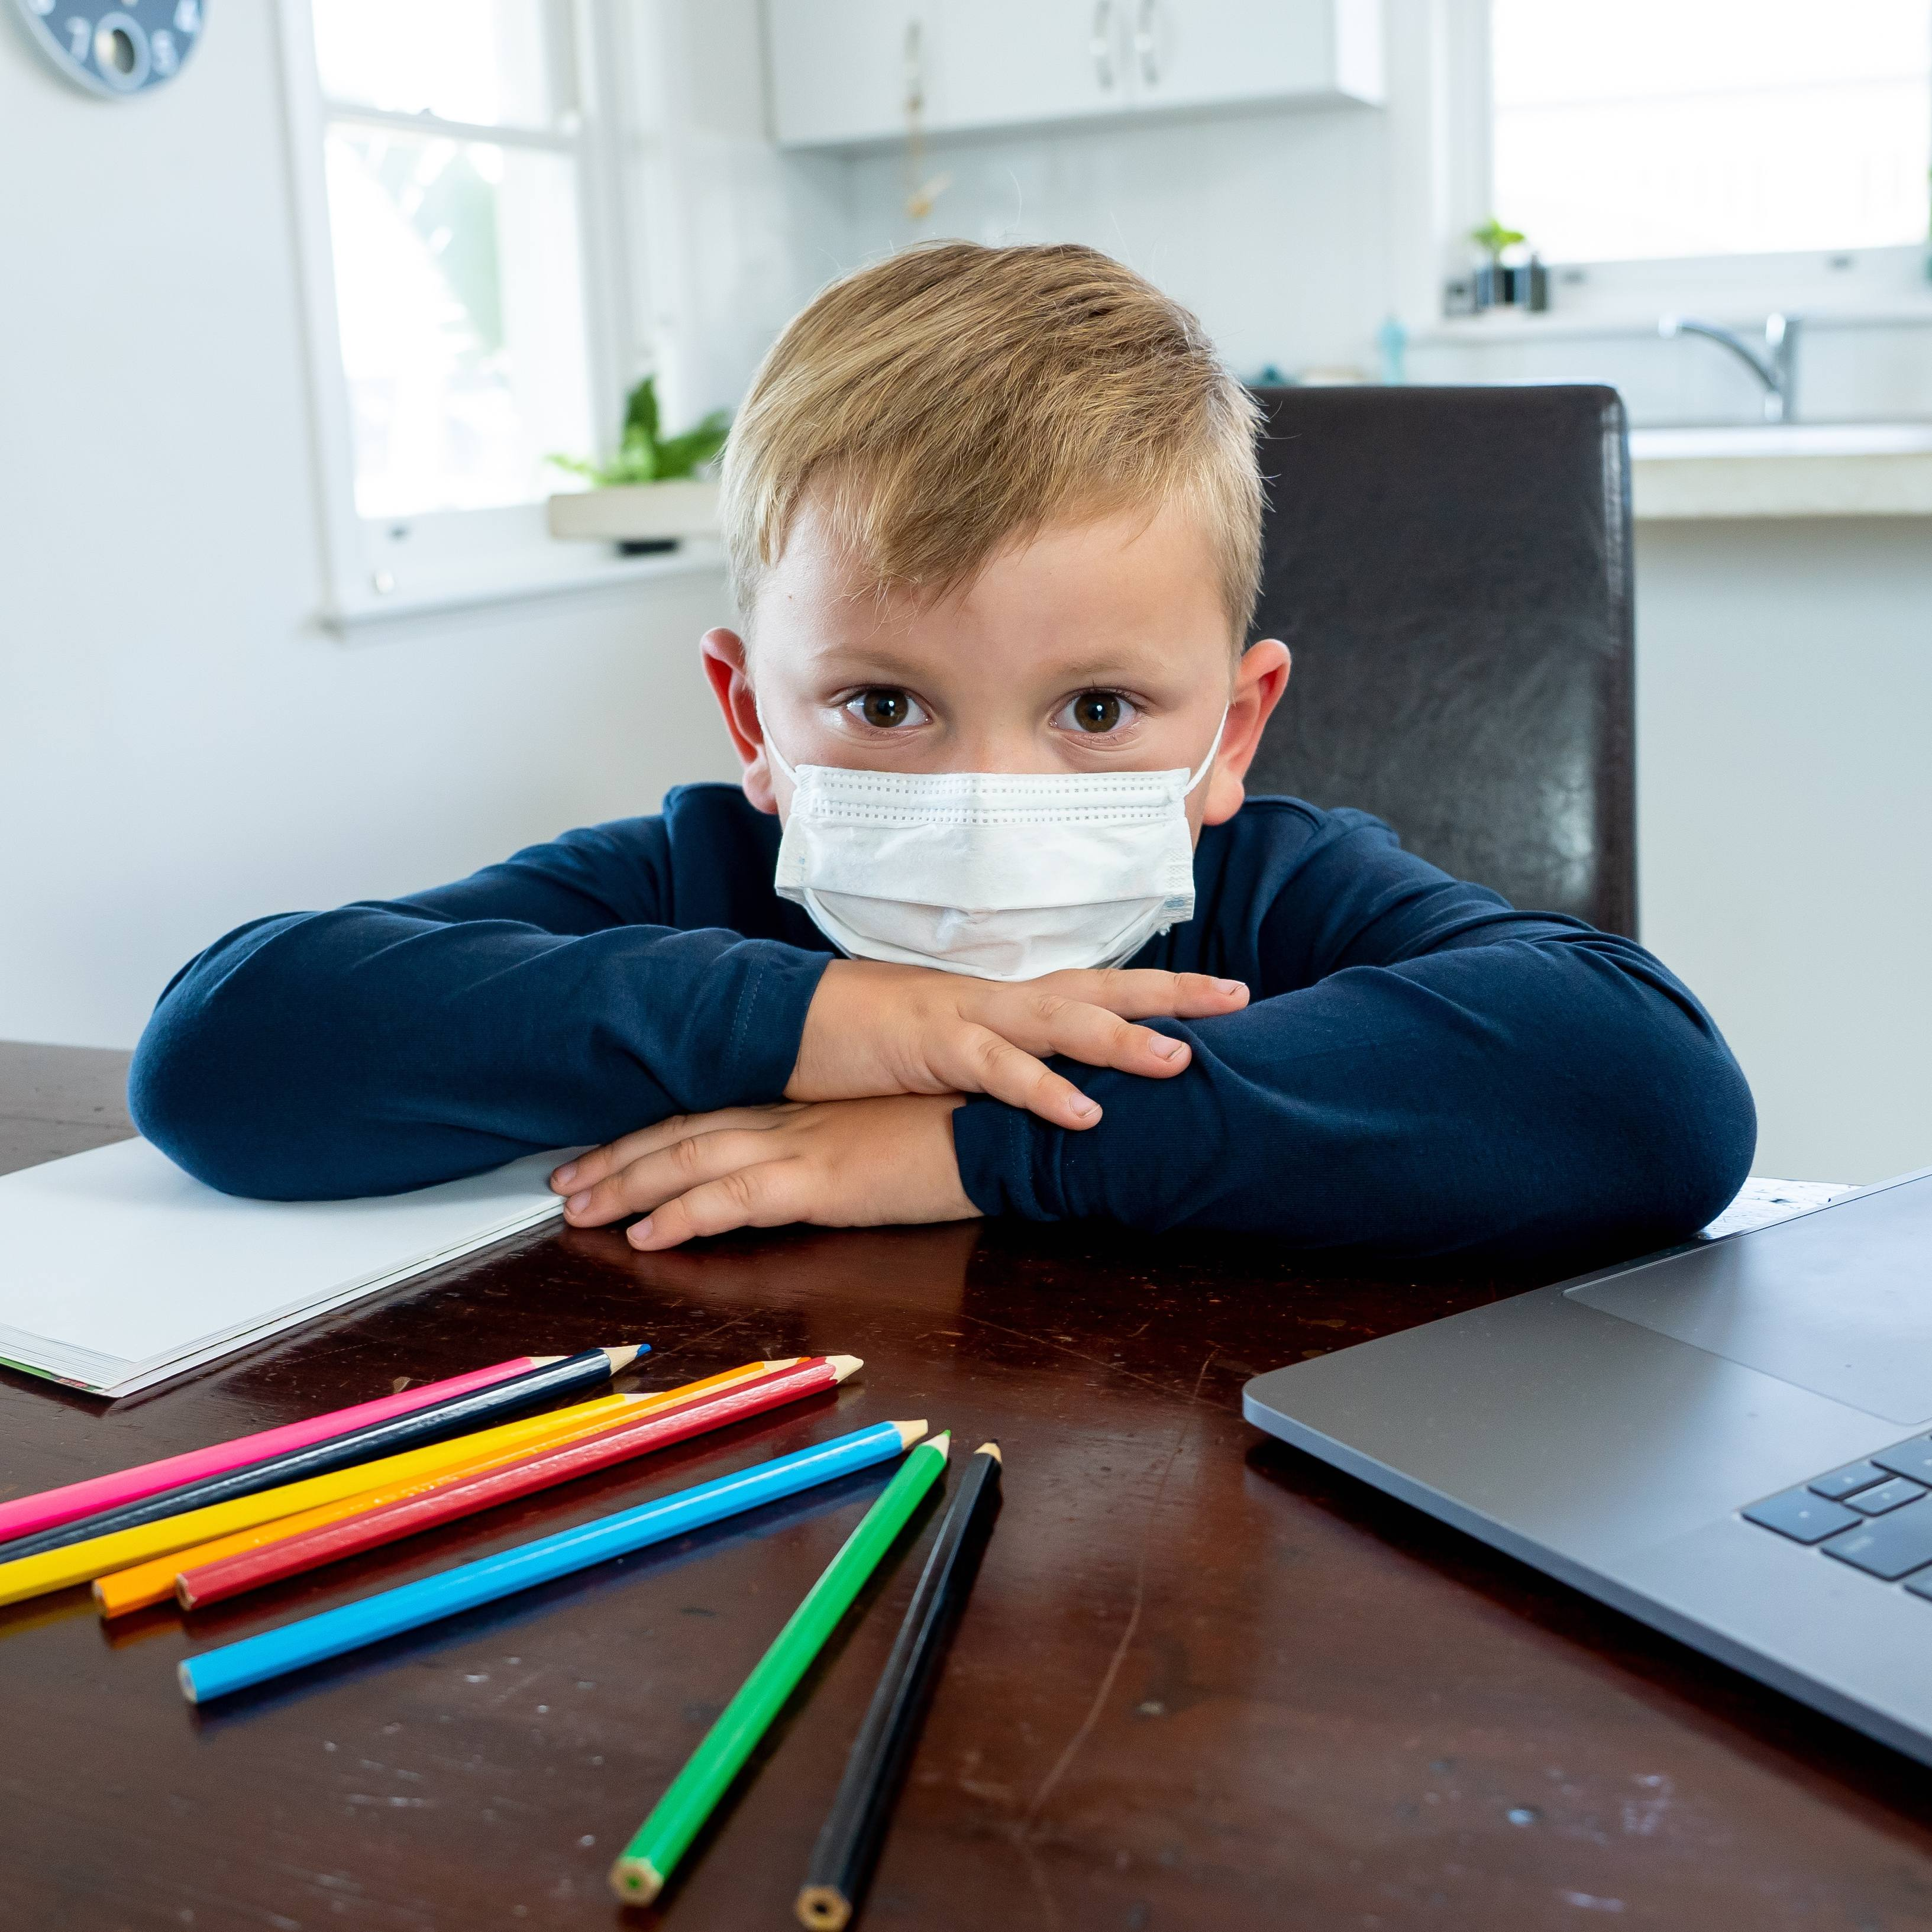 a young white school aged boy looking sad and lonely, wearing a face mask and sitting at a desk and resting his head on his arms, with paper, colored pencils and a laptop computer